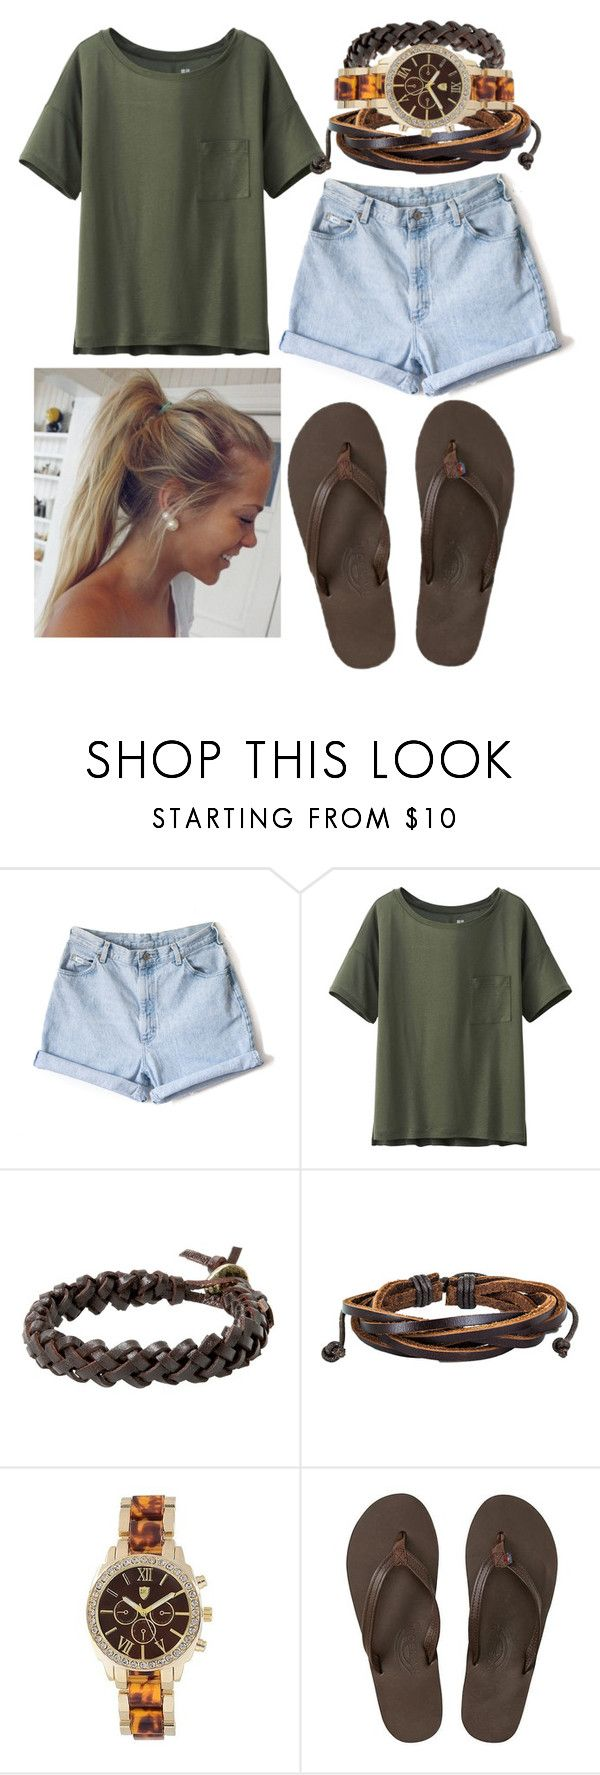 """""""Classy and Chic"""" by lauren-vittorio ❤ liked on Polyvore featuring Uniqlo, MANGO, West Coast Jewelry, Journee Collection and Rainbow Sandals"""